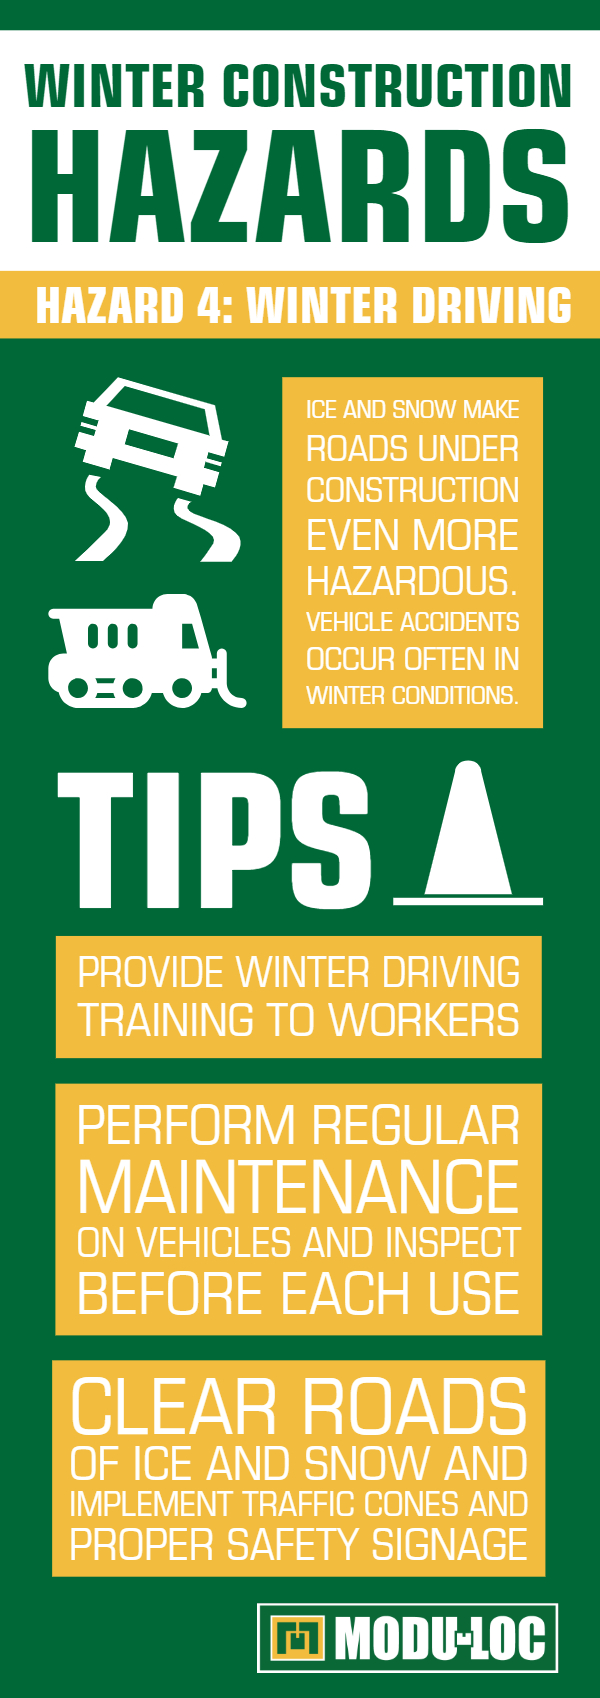 Winter Construction Hazard #4: Winter Driving. Ice and snow make roads under construction even more hazardous. Vehicle accidents occur often in winter conditions.